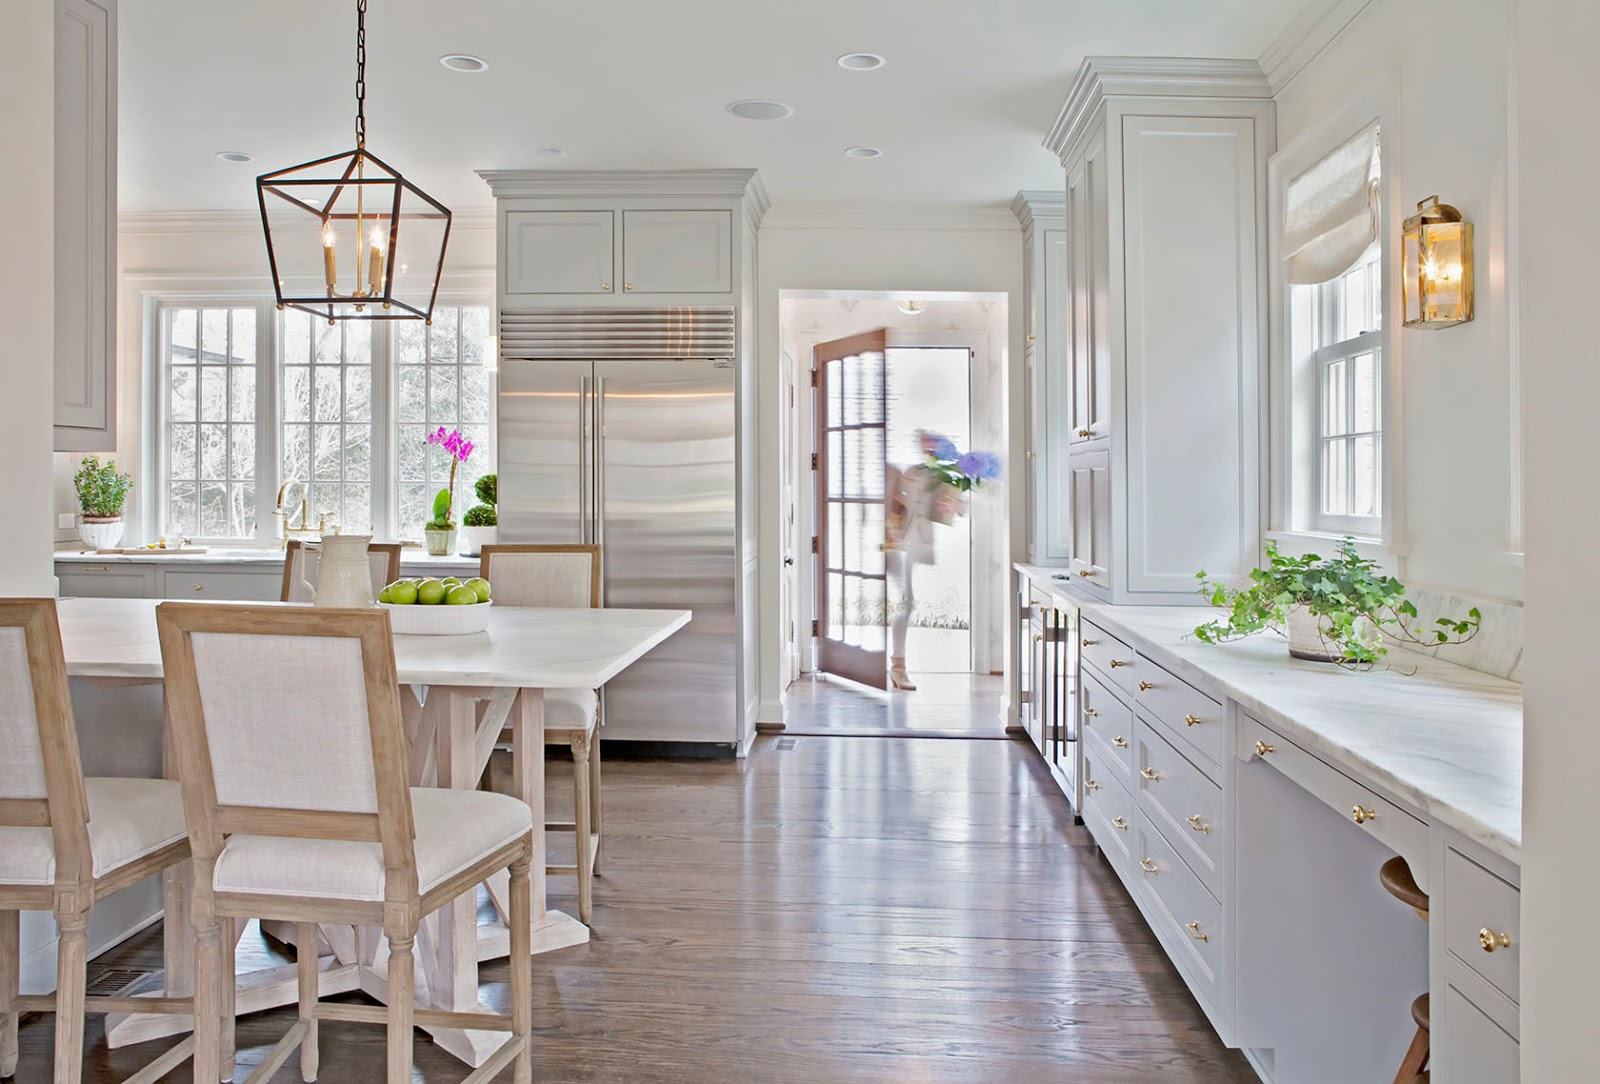 Gorgeous chic white kitchen by Rachel Halvorson - found on Hello Lovely Studio